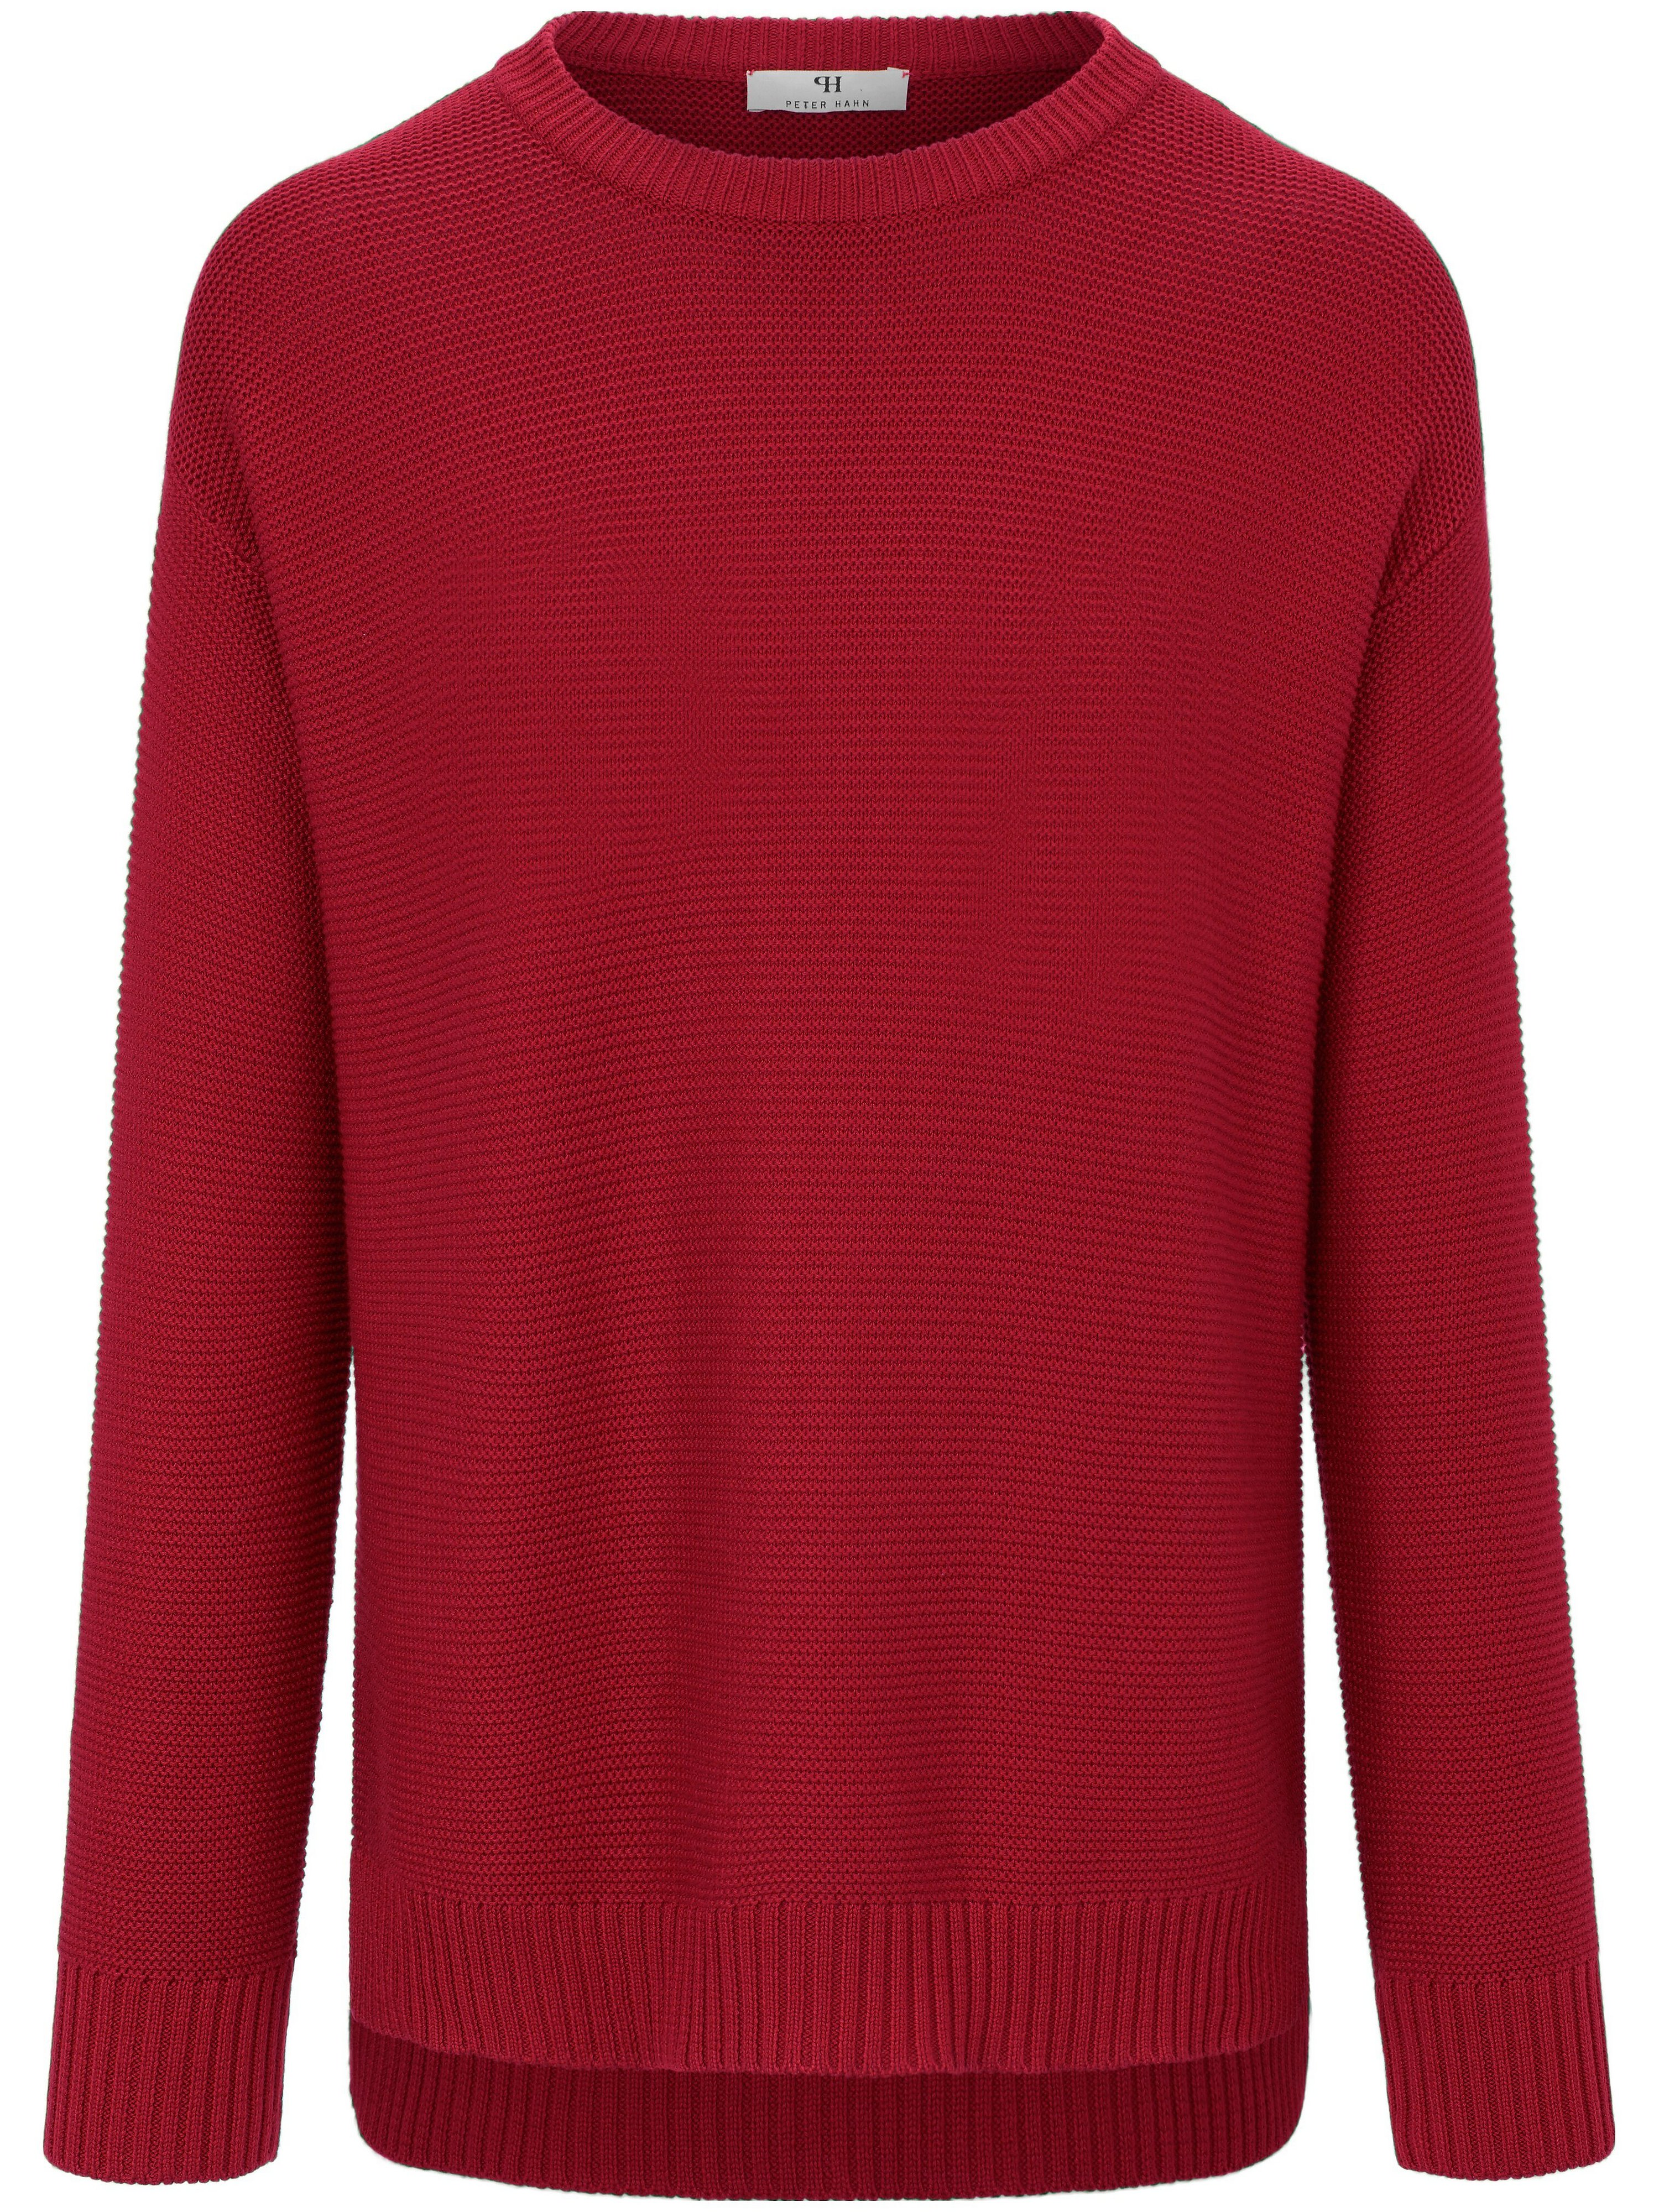 Le pull  Peter Hahn rouge